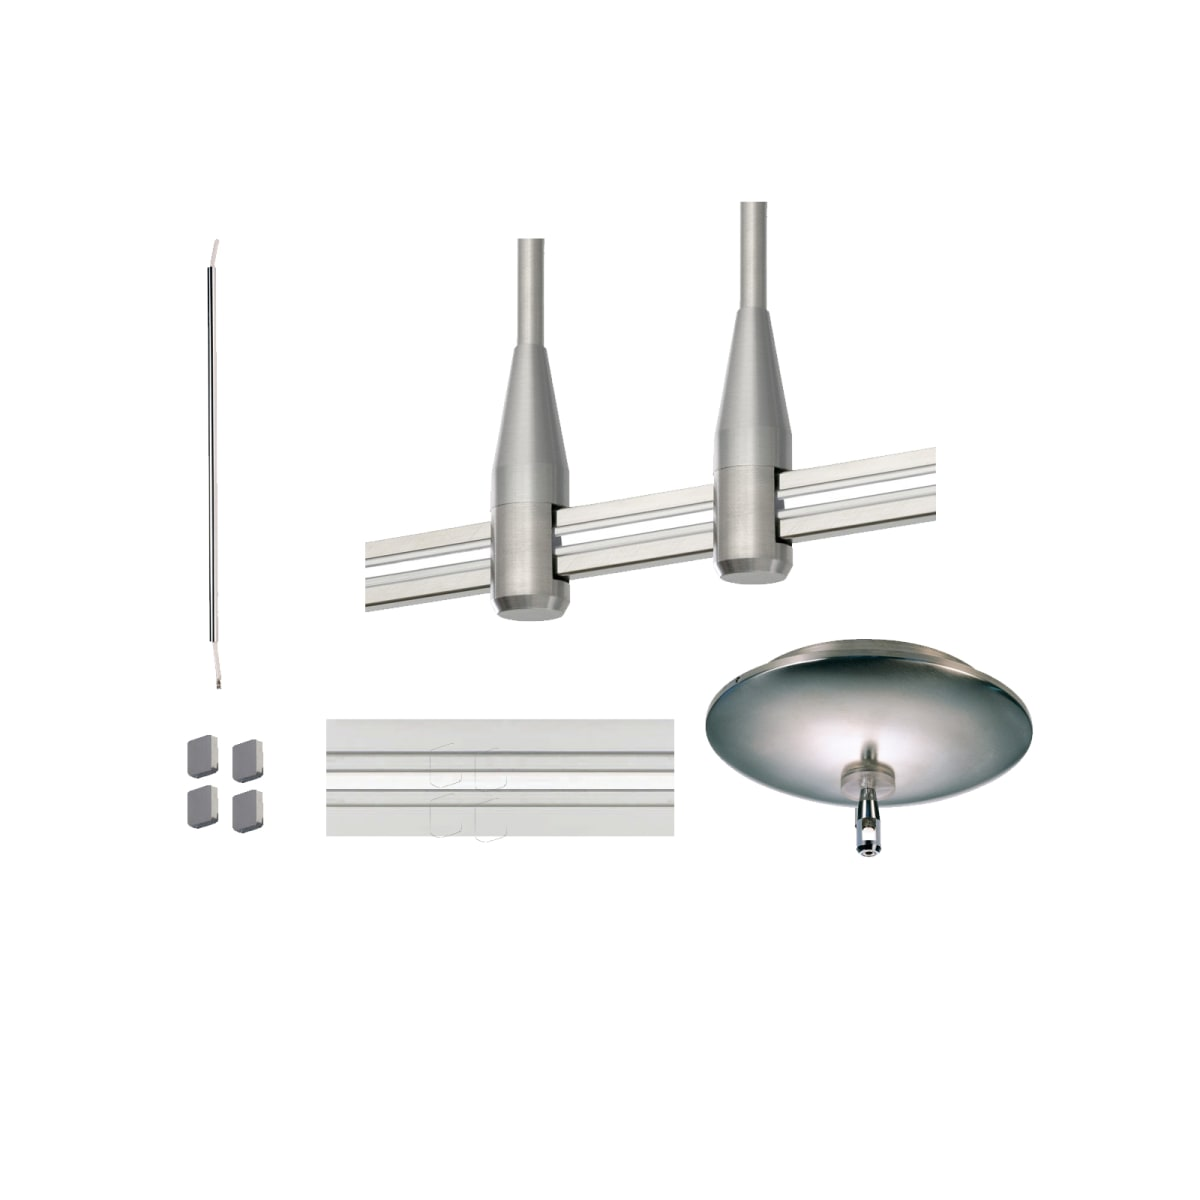 Tech Lighting 48 Mono 24 300w M Satin Nickel 48 Monorail Kit With 2 24 Stand Offs 24 Power Extender End Caps And 300w 9 1 Round Magnetic Transformer Canopy Lightingshowplace Com